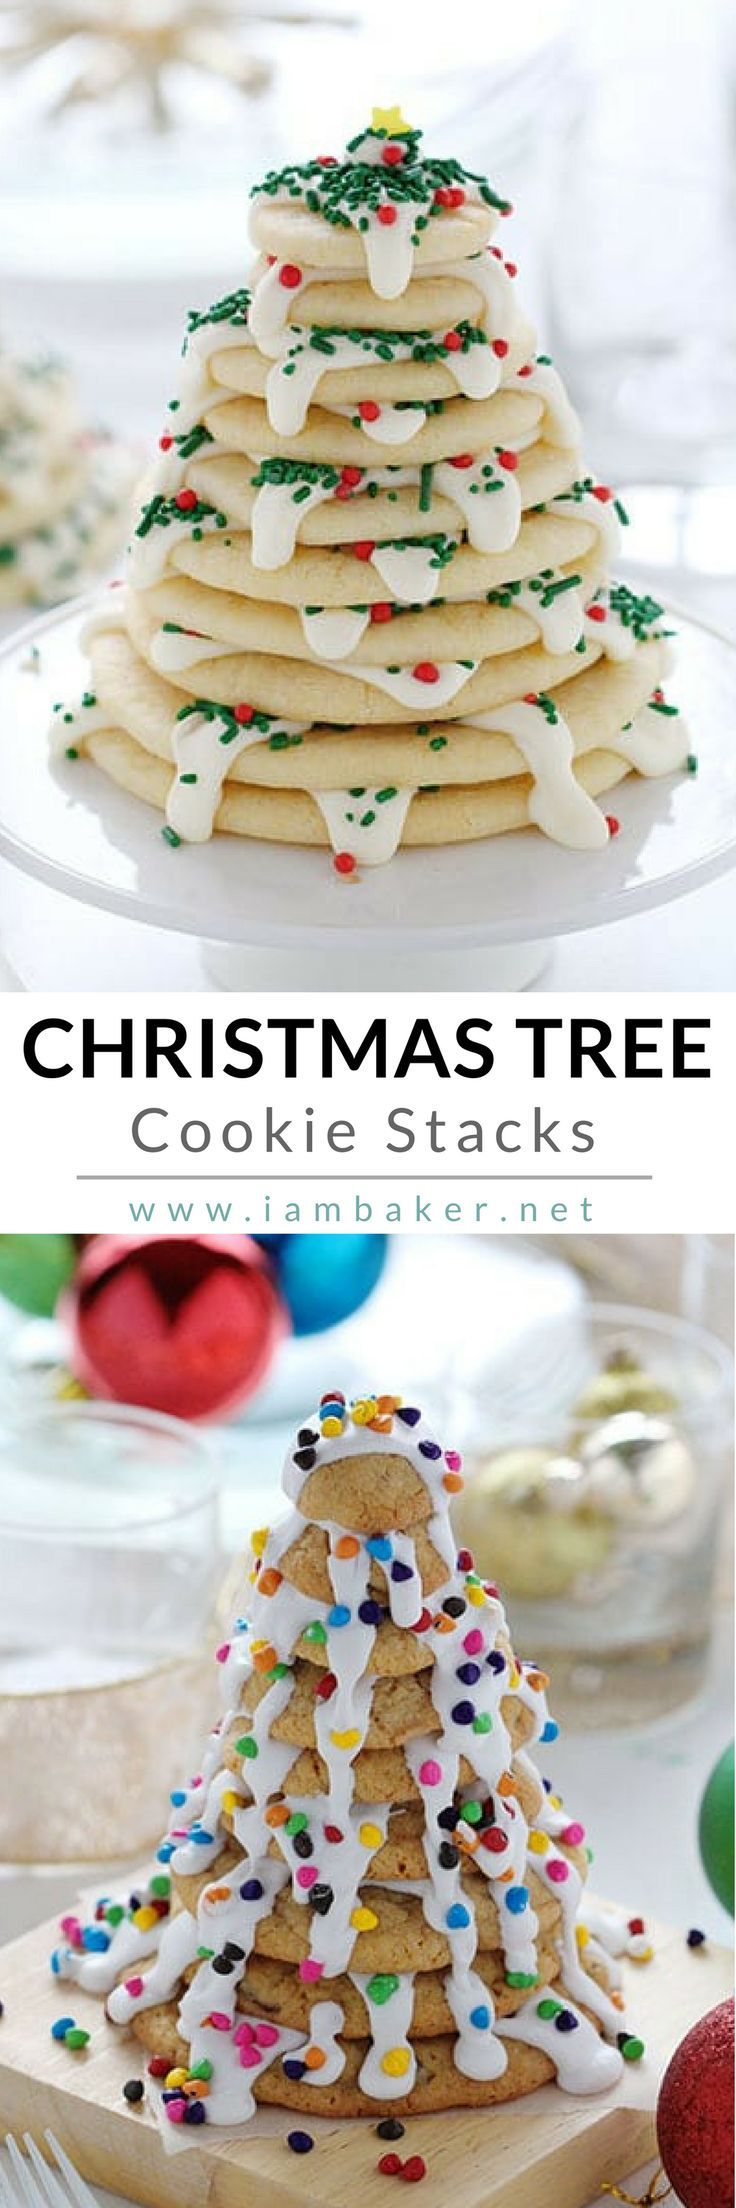 Another creative Christmas dessert ideas from @iambaker! This Christmas Tree Cookie Stacks is deliciously made of chocolate chip cookie mix and rich and creamy vanilla frosting.  Totally fun to share and eat and  one of the easy Christmas cookie recipes you can make! This is definitely one the best homemade sugar cookies- beautiful and simple you can give as  Christmas treats! More easy dessert recipes  #iambaker #iambakerdessert #iambakercookie #christmascookies